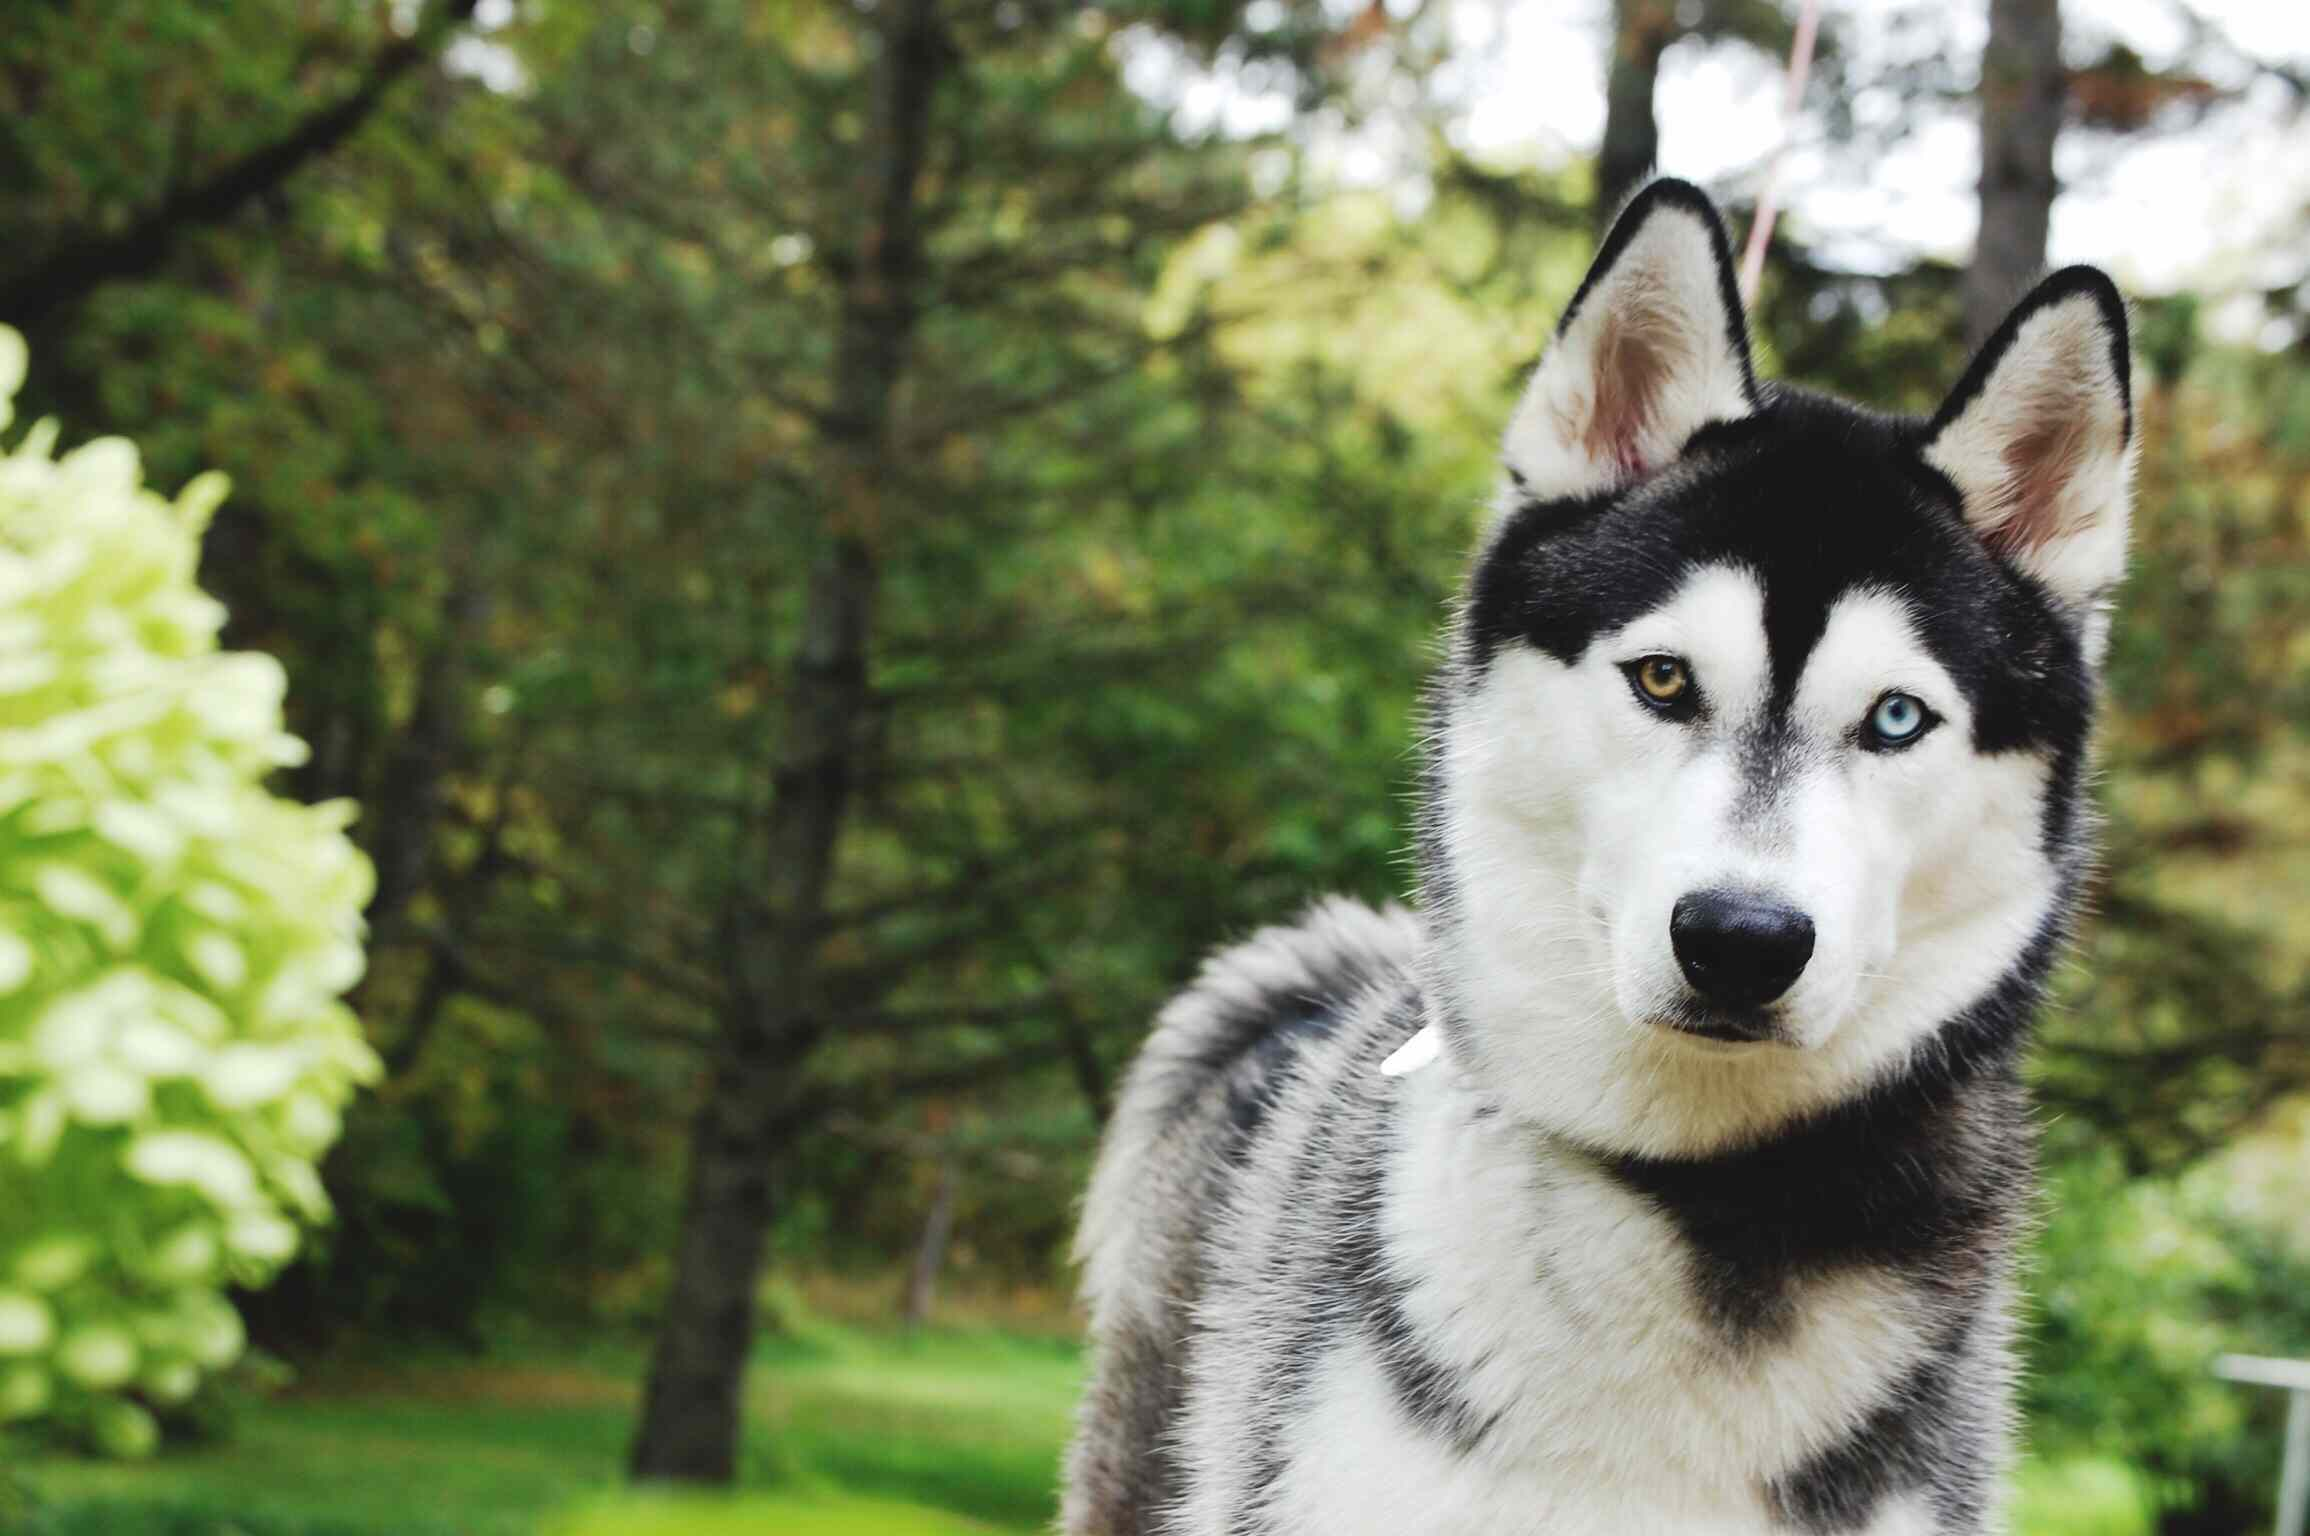 Husky in a garden with trees in background